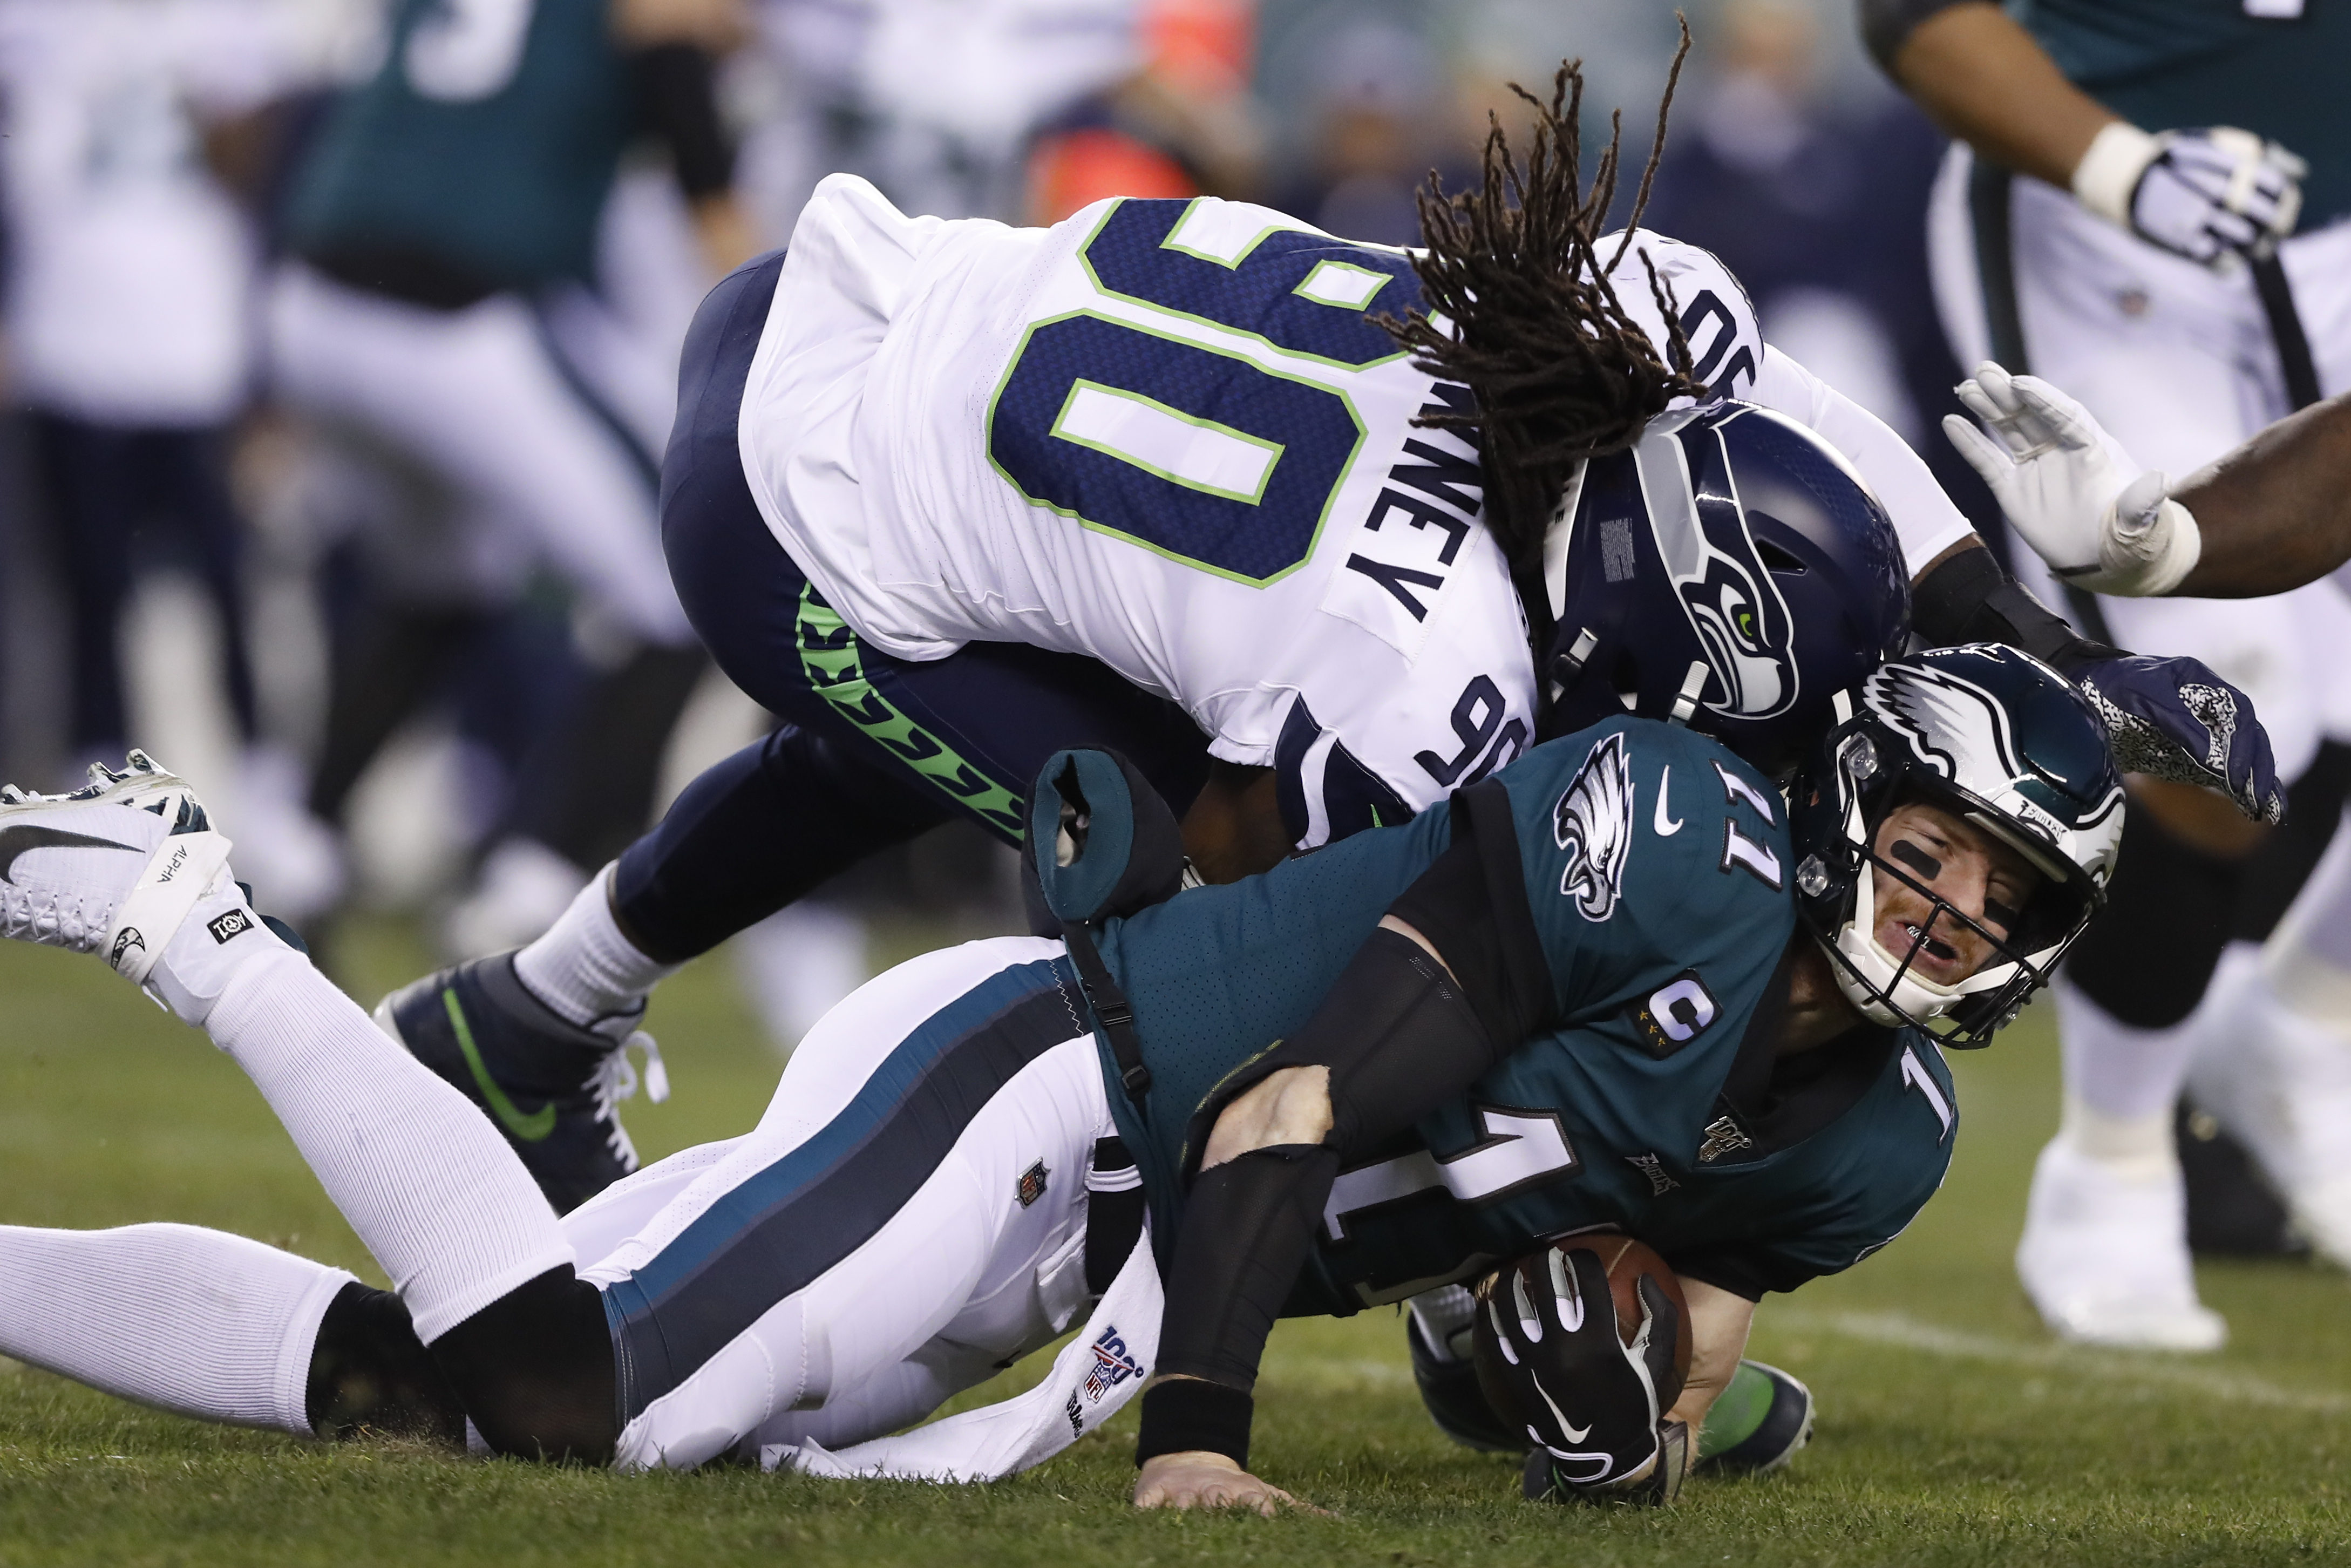 Carson Wentz Injury Eagles Qb Knocked Out Of Playoff Game With Head Injury The Washington Post